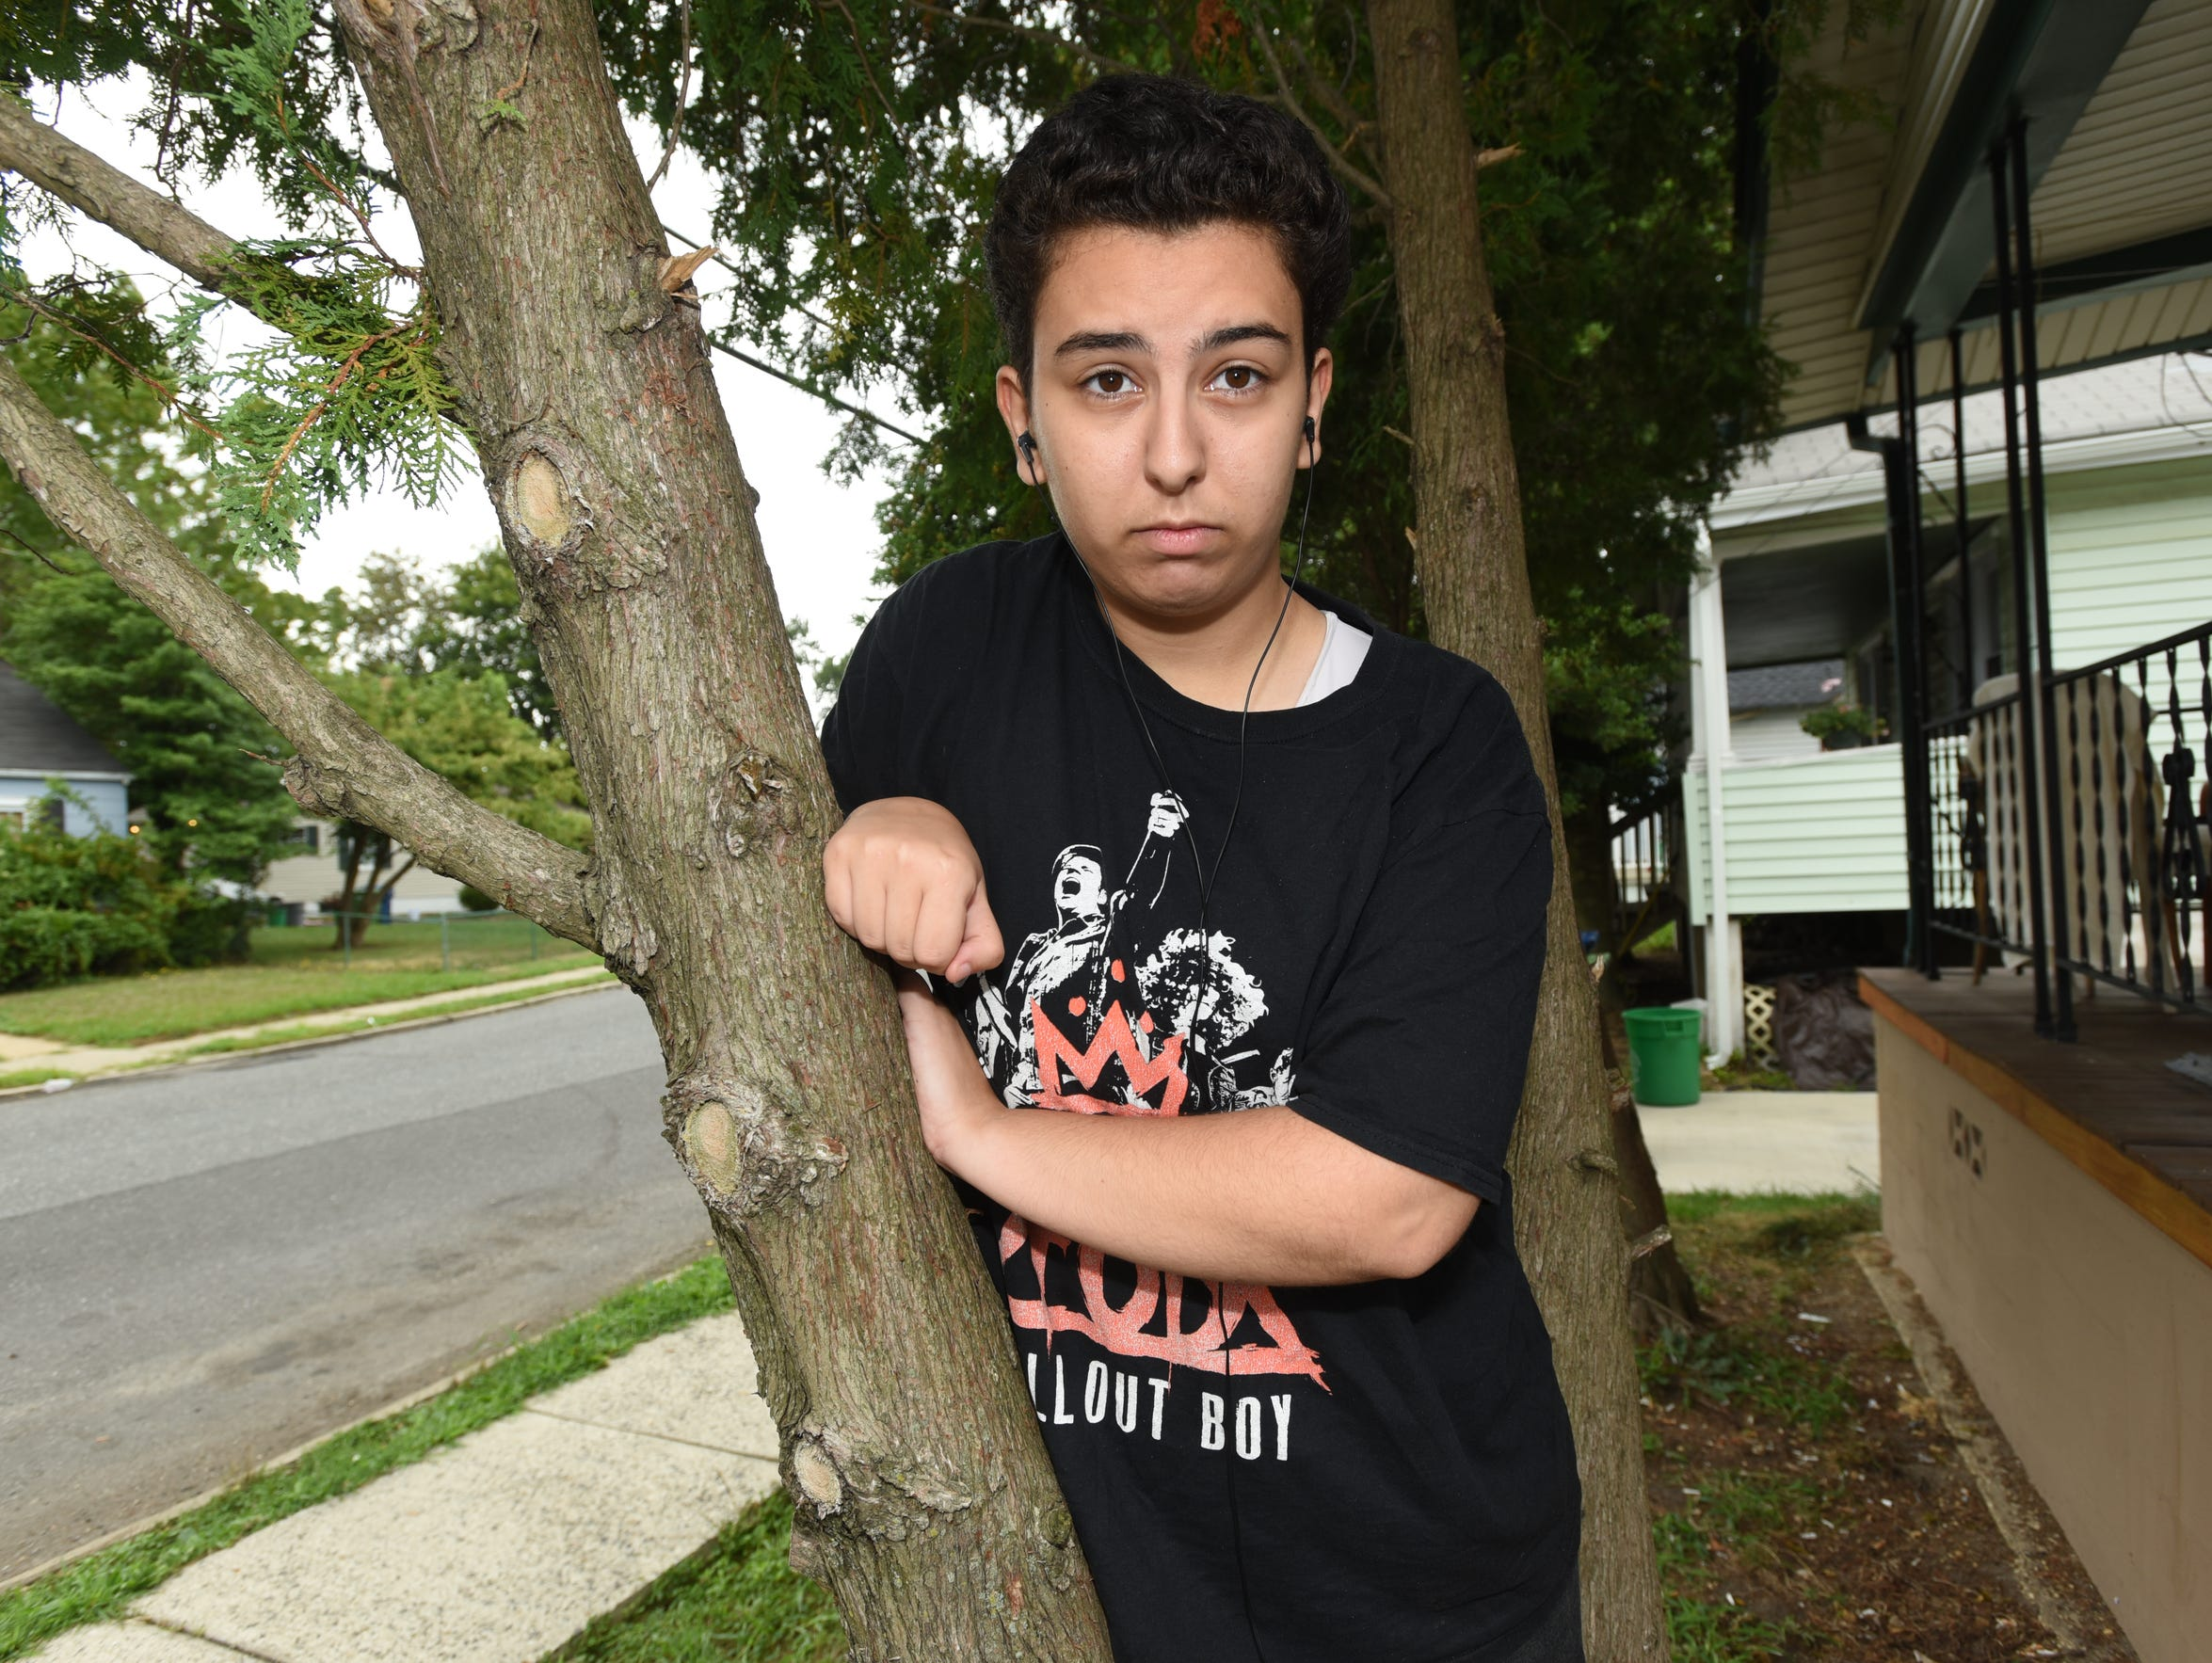 Jonah Elgamal, a 15-year-old transgender boy, attended